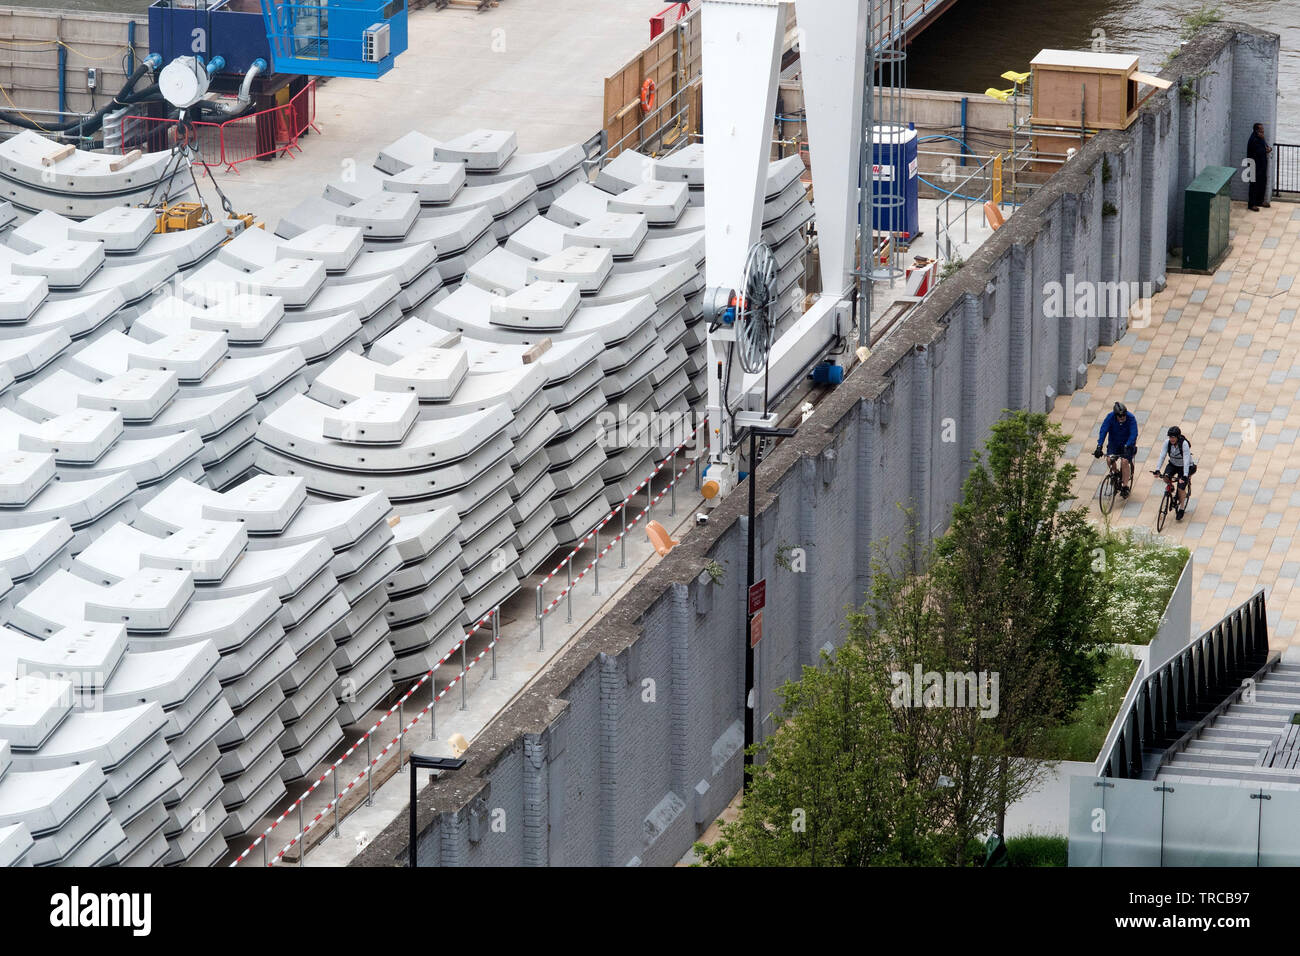 Concrete tunnel segments being delivered by barge at Thames Tideway super sewer site at Battersea Power Station in London. 31/5/19. - Stock Image